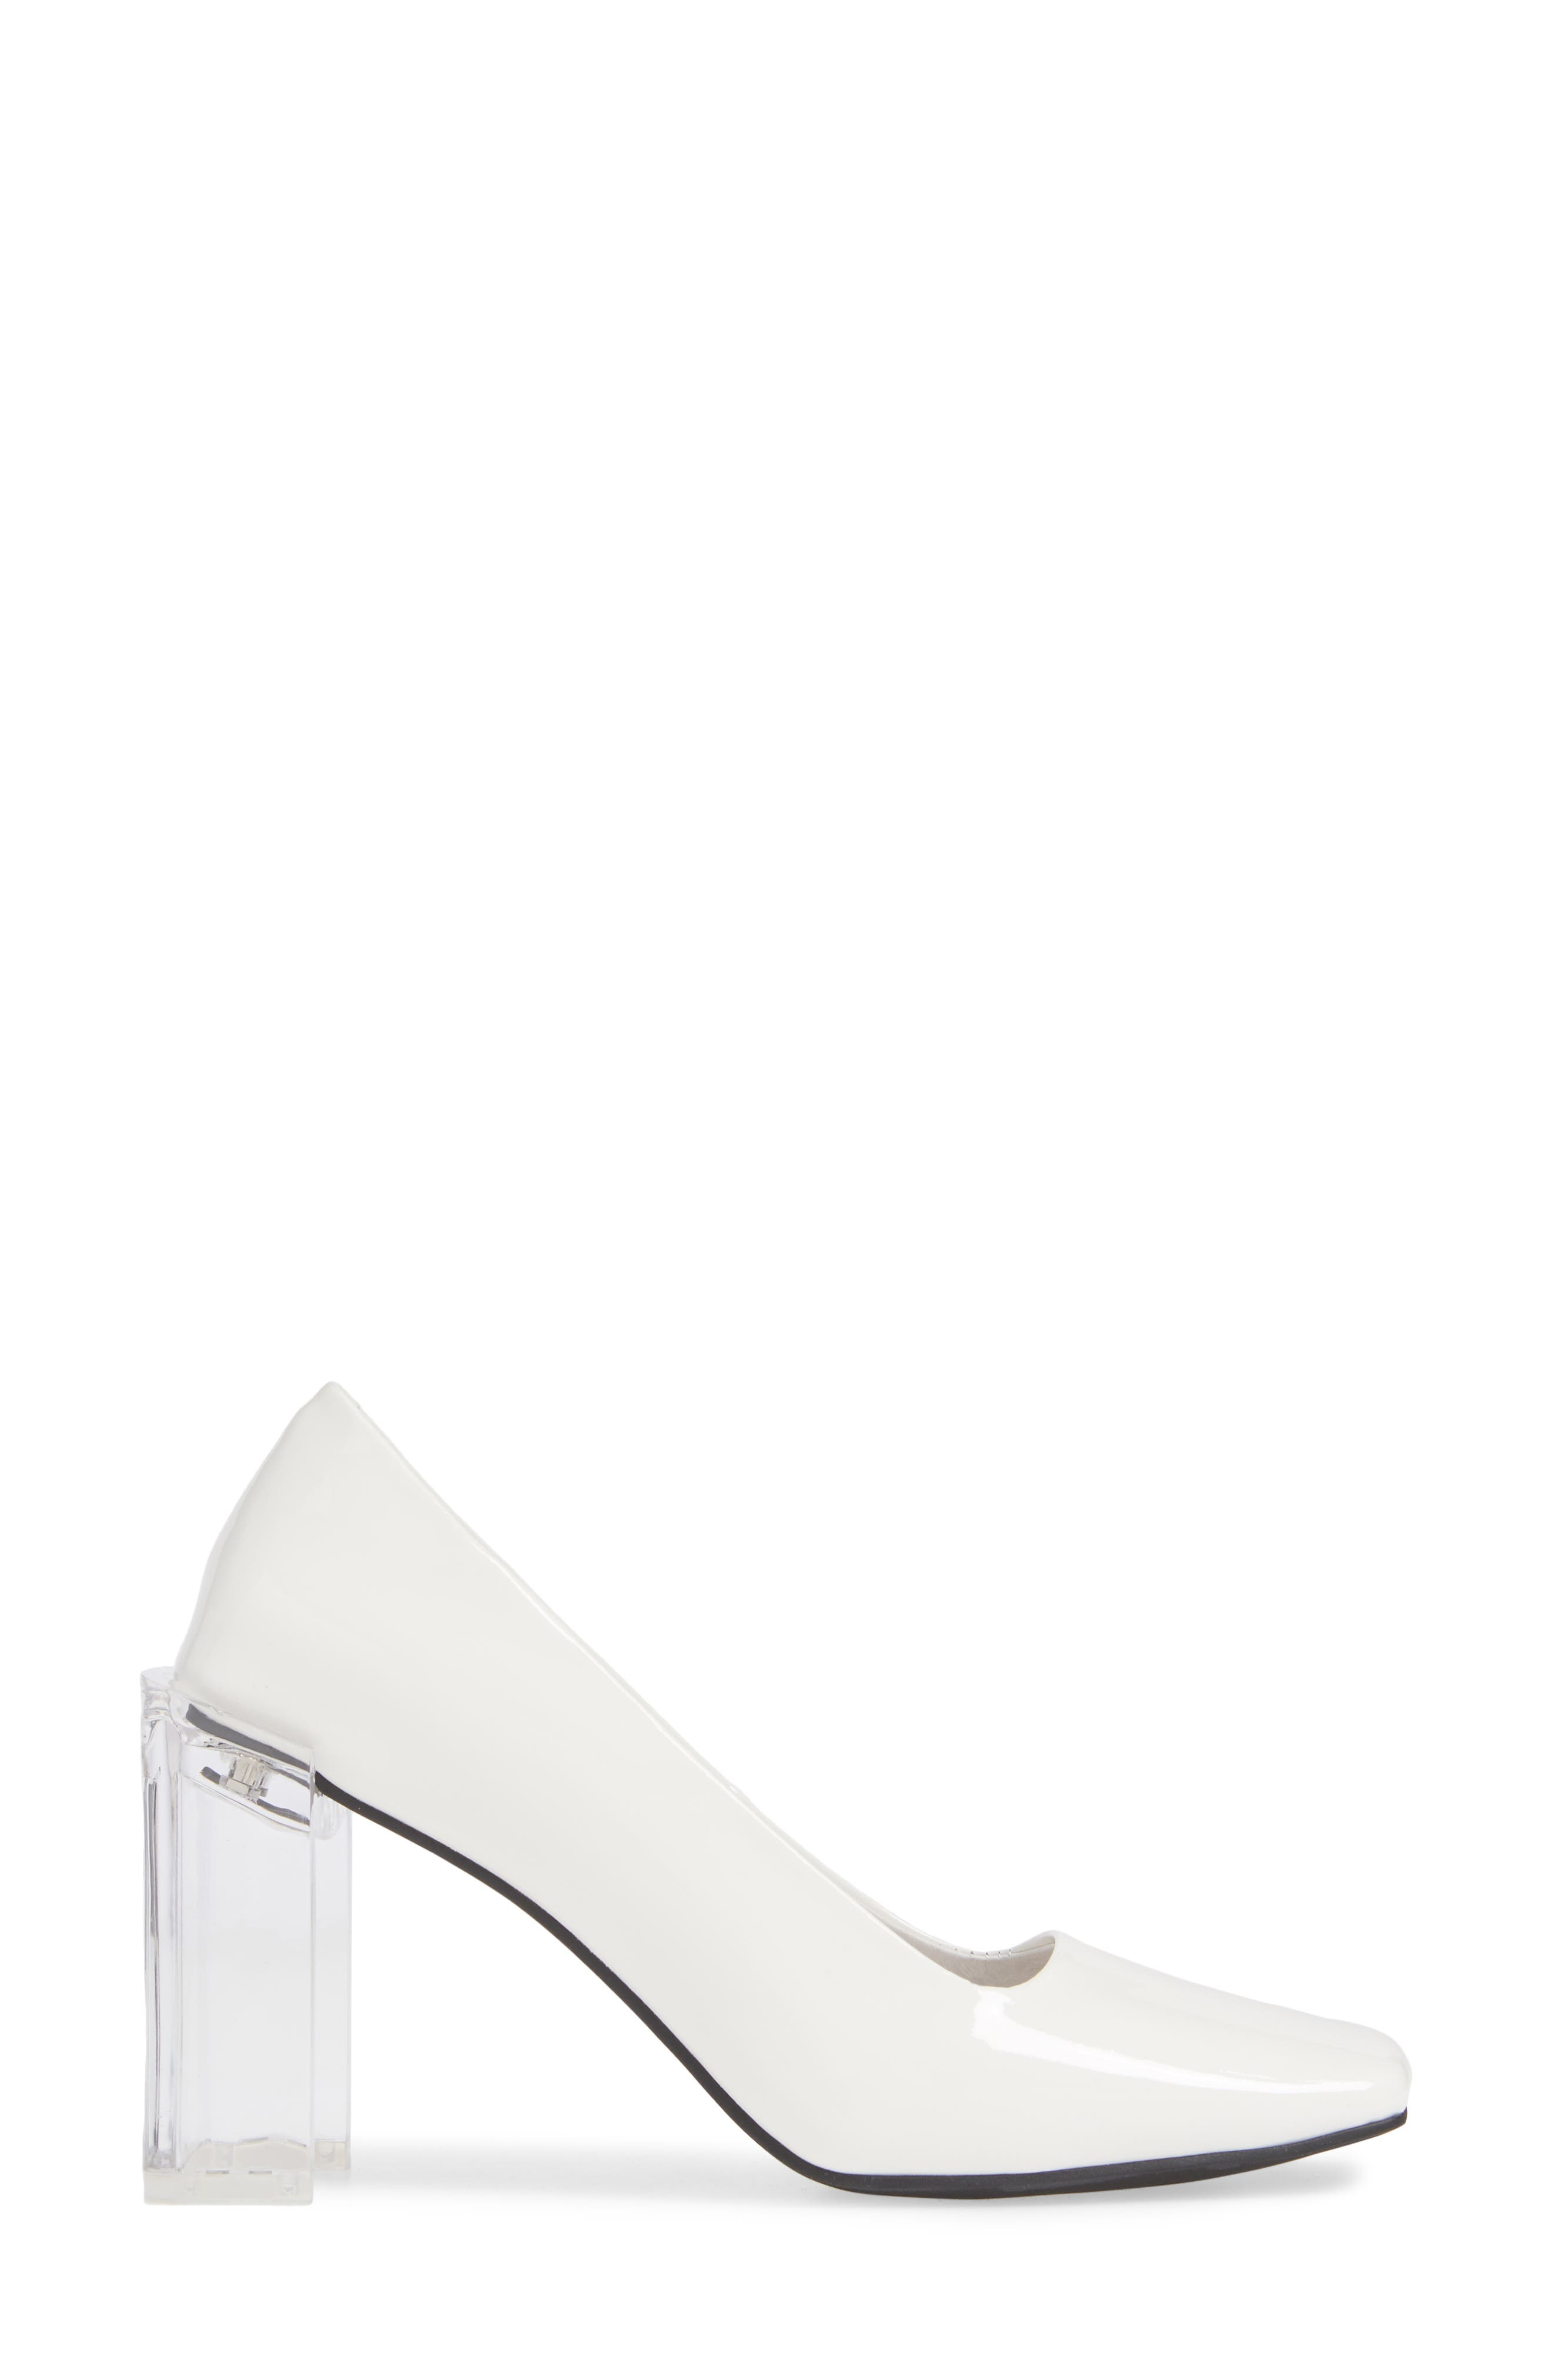 JEFFREY CAMPBELL, Graff Clear Heel Pump, Alternate thumbnail 3, color, WHITE PATENT LEATHER